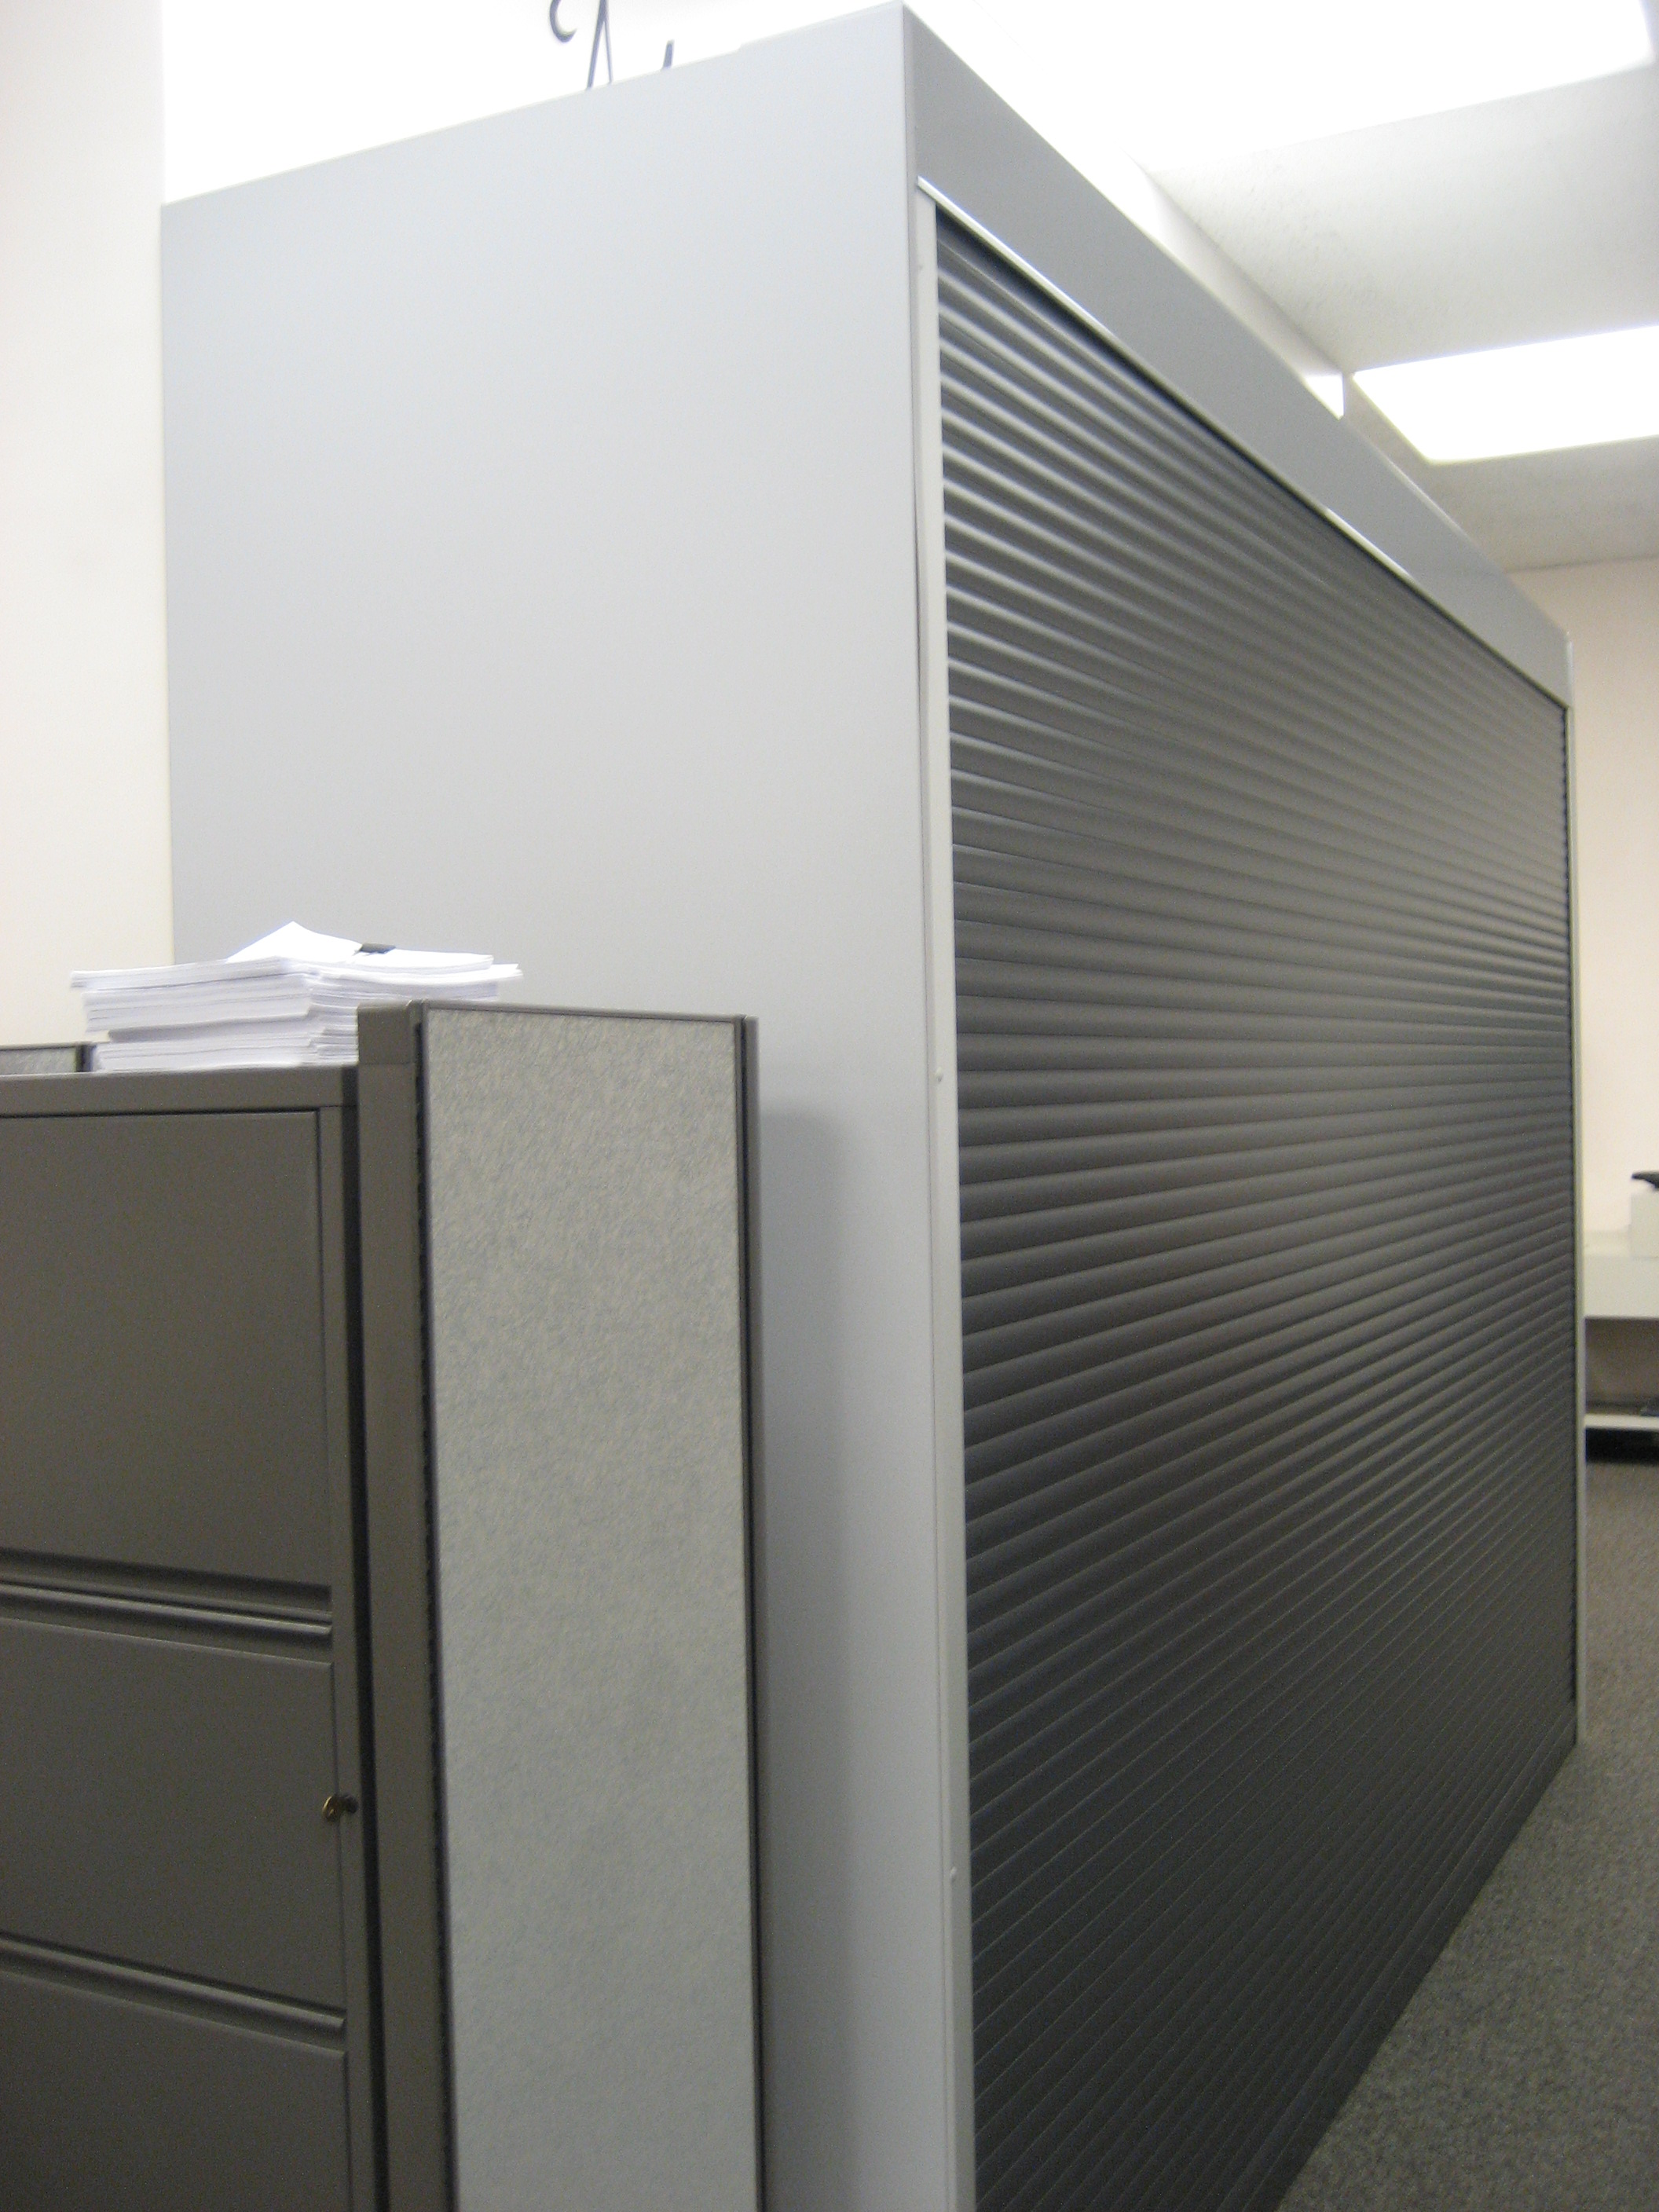 Rollok Security Door for file shelving